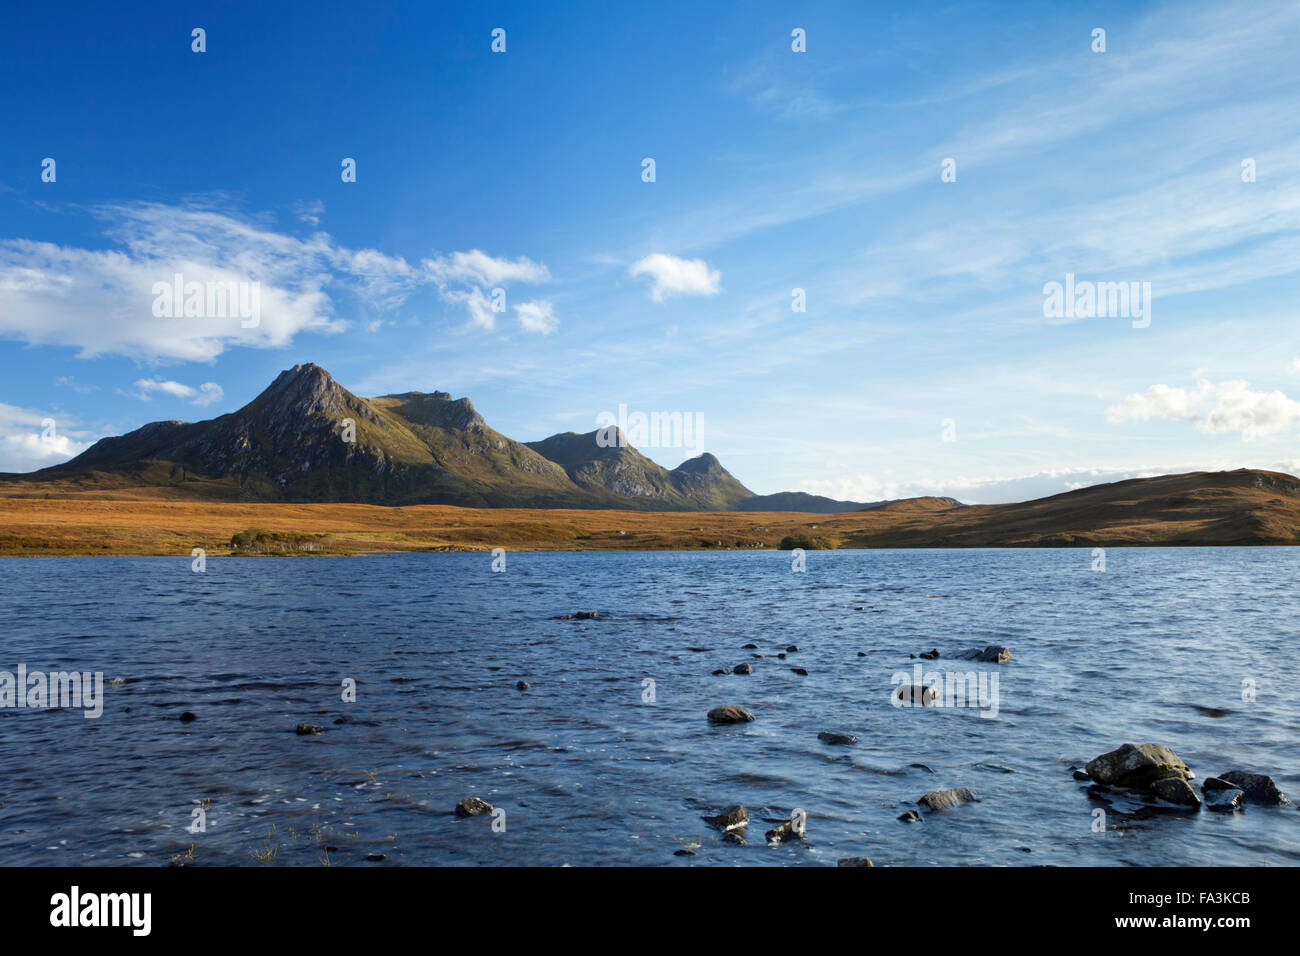 The mountain range of Ben Loyal with the loch below, in late afternoon sunlight. - Stock Image